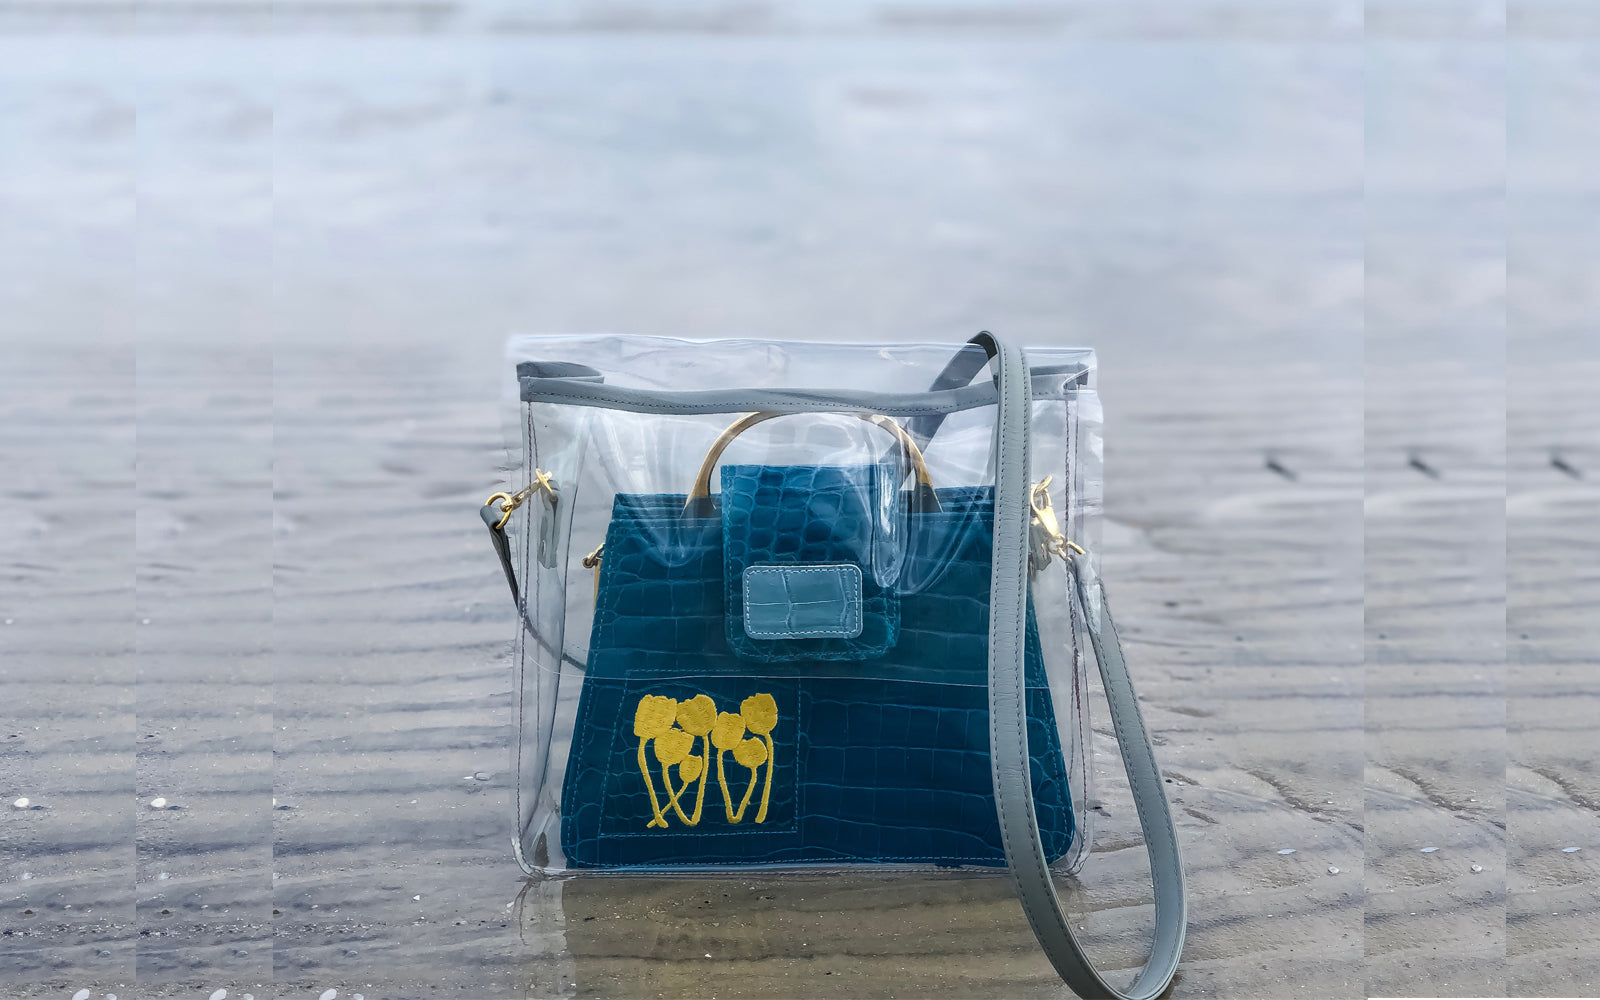 LIN8 Australia's slow fashion accessories. Protect your handbag with this clear pvc bag in a bag. made in Australia